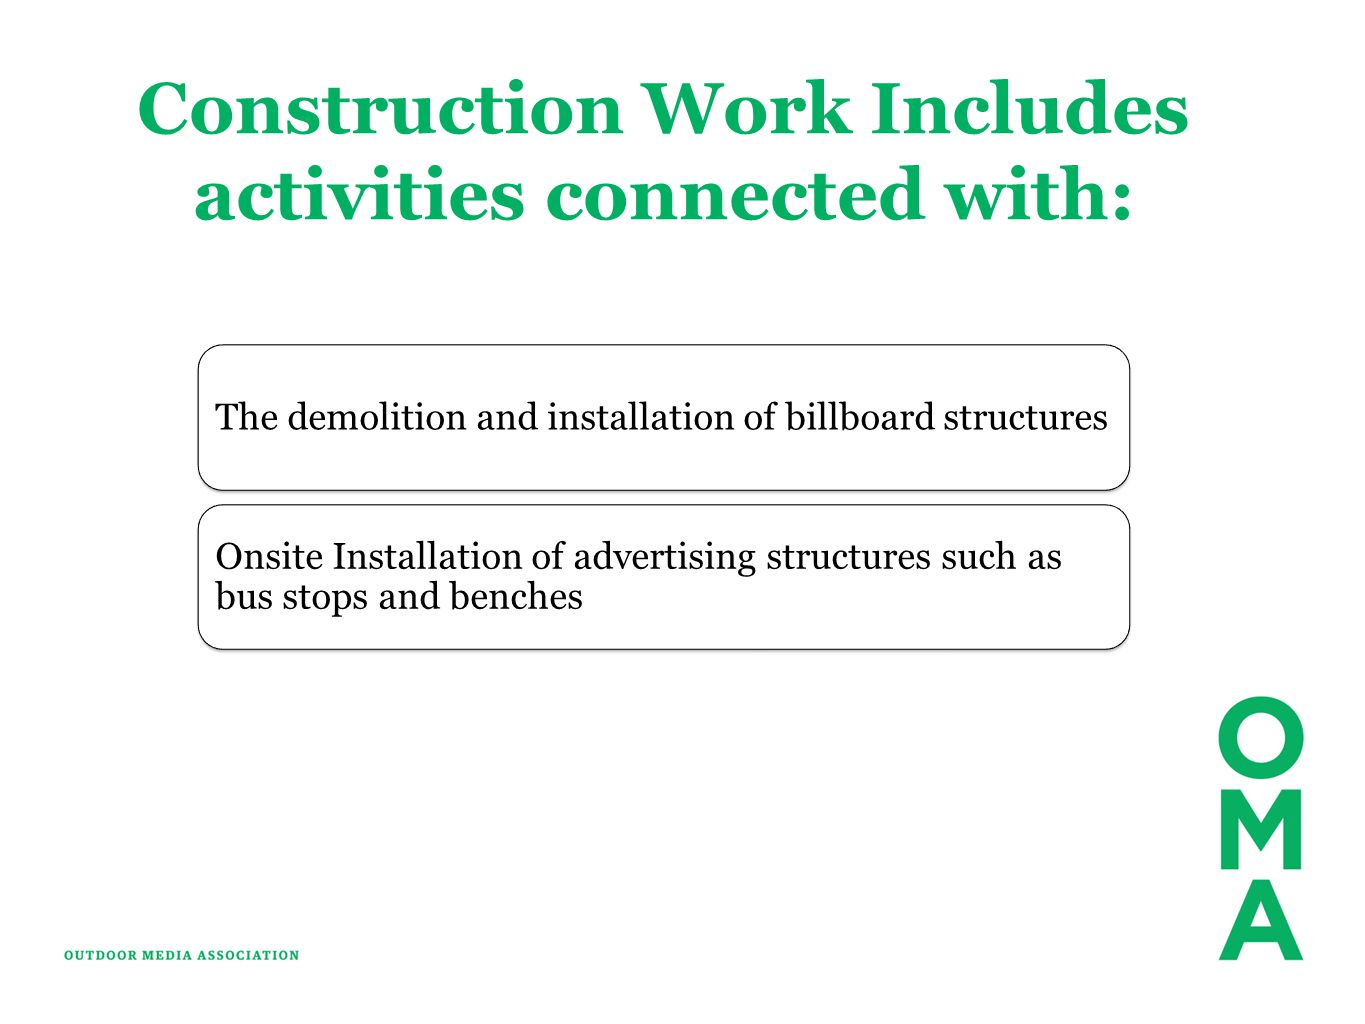 Construction Work Includes activities connected with: